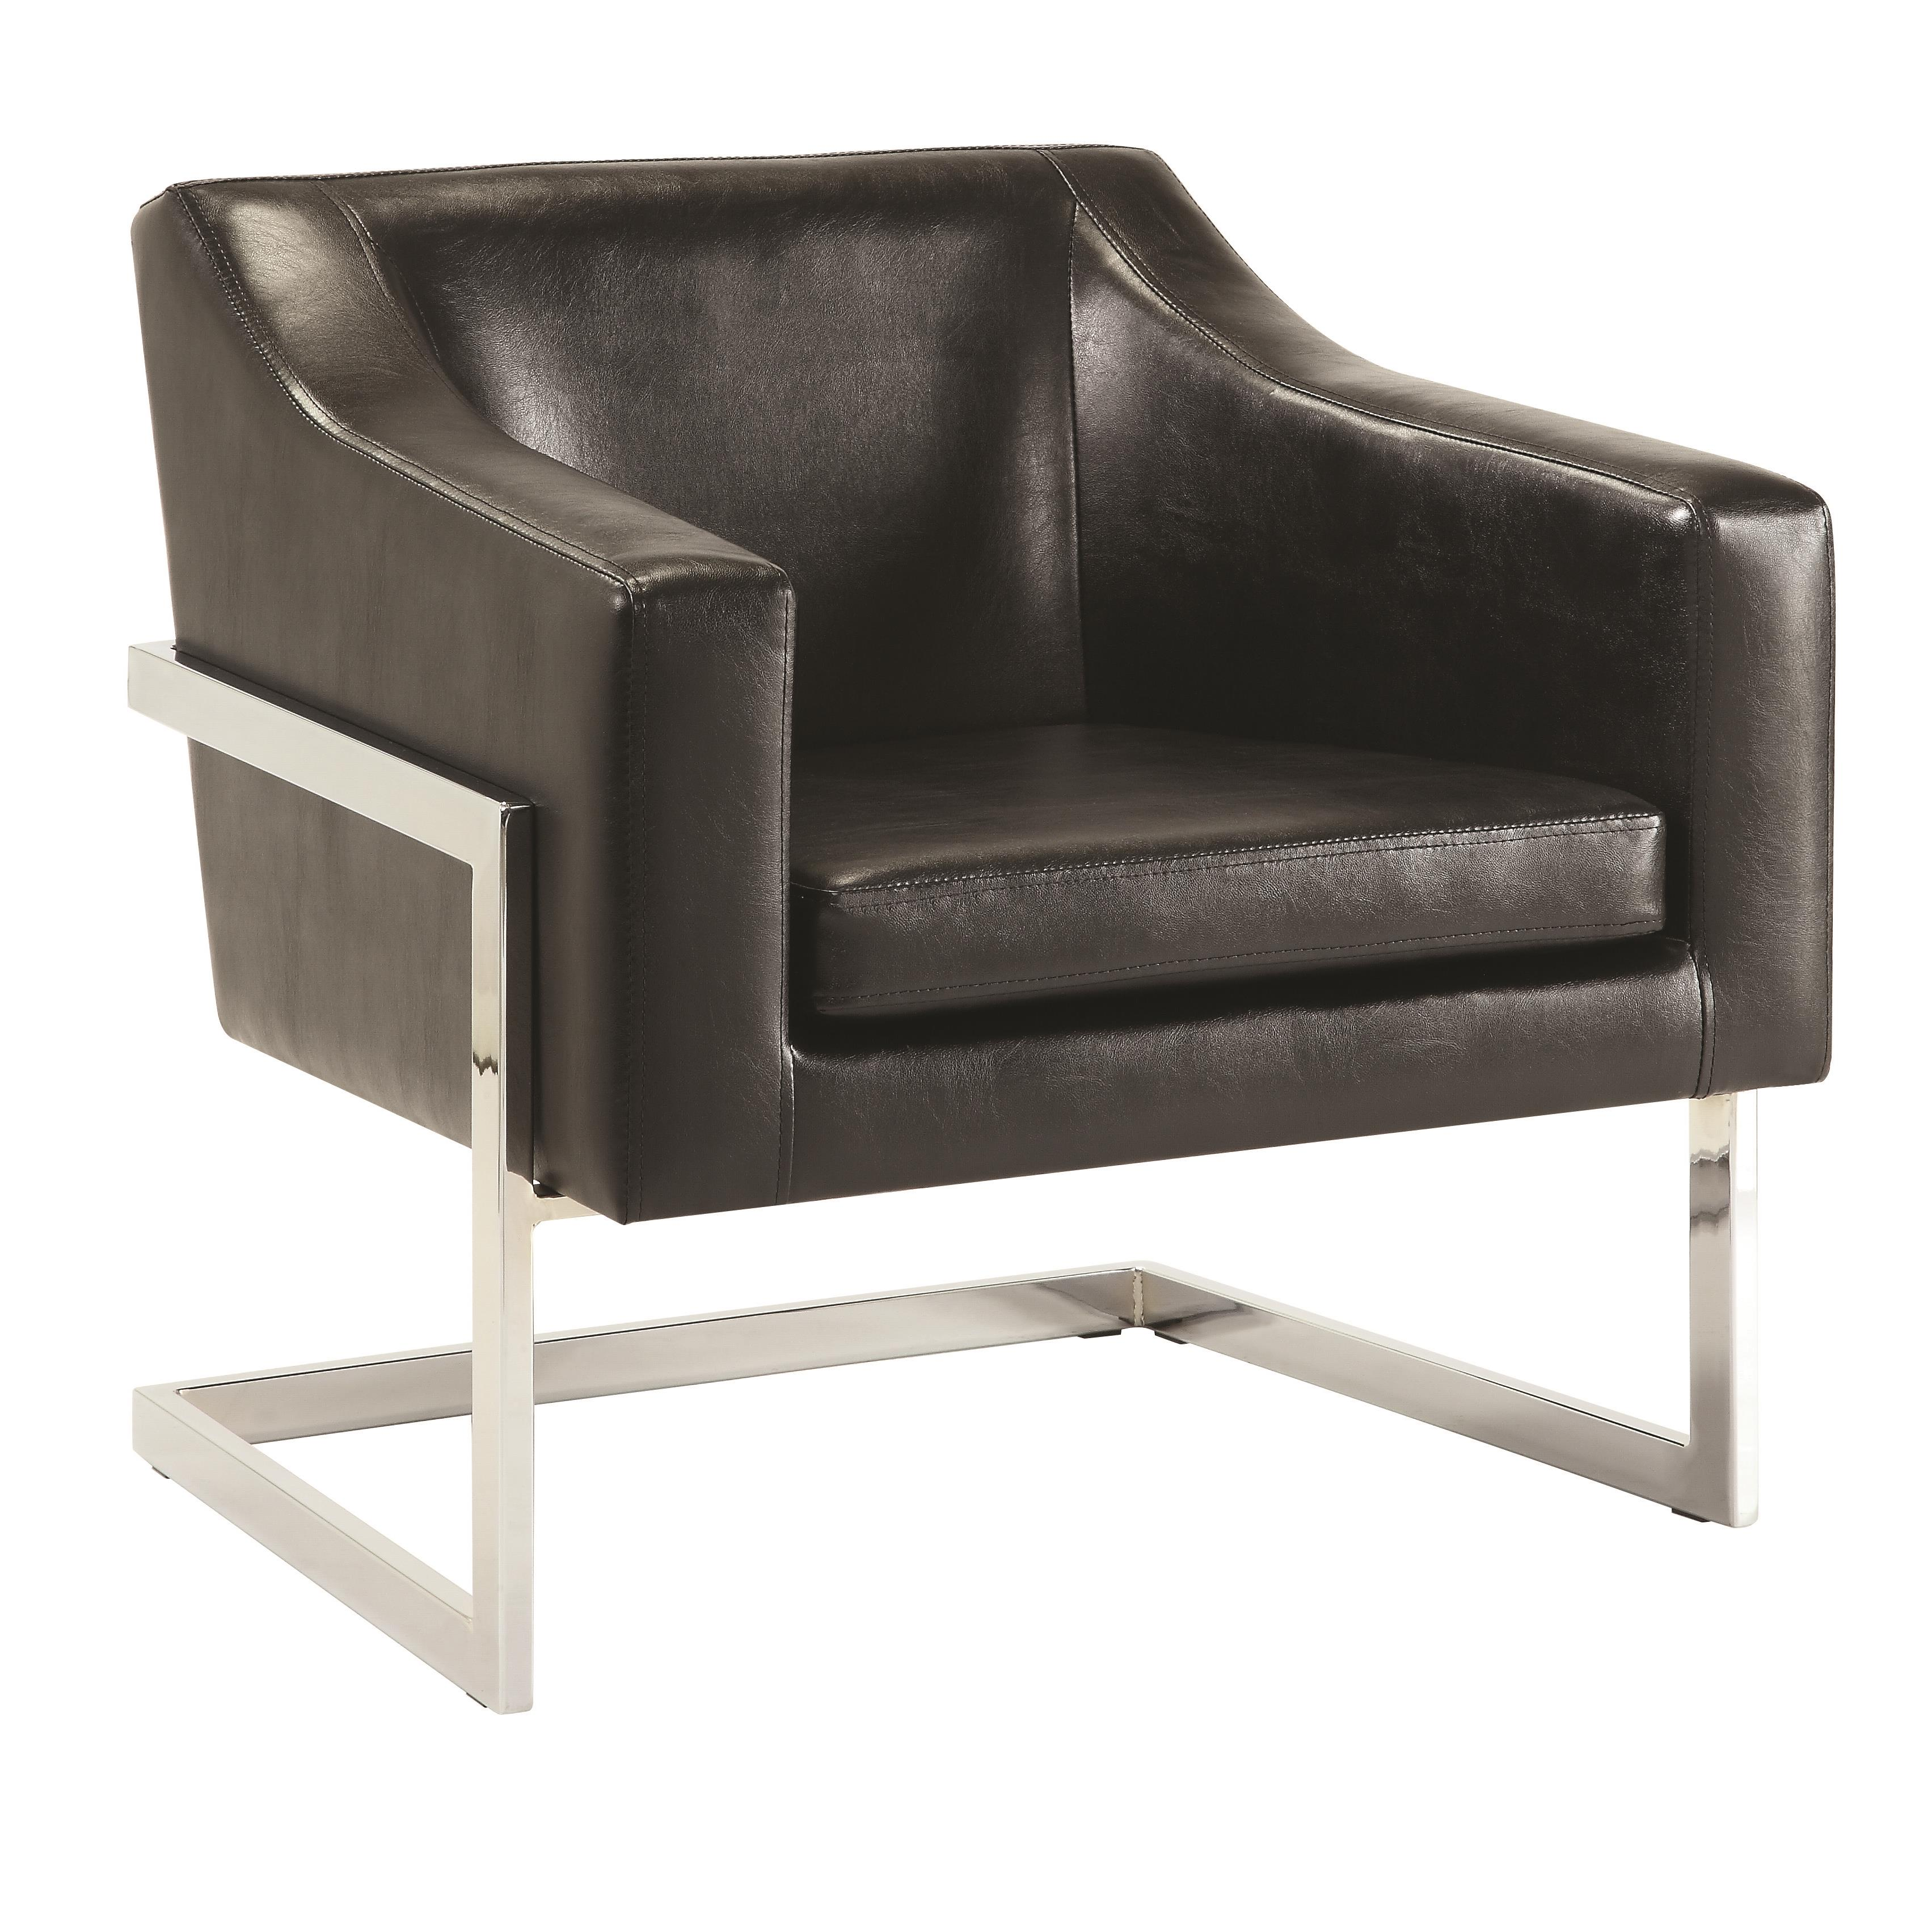 Coaster Accent Seating Accent Chair - Item Number: 902538